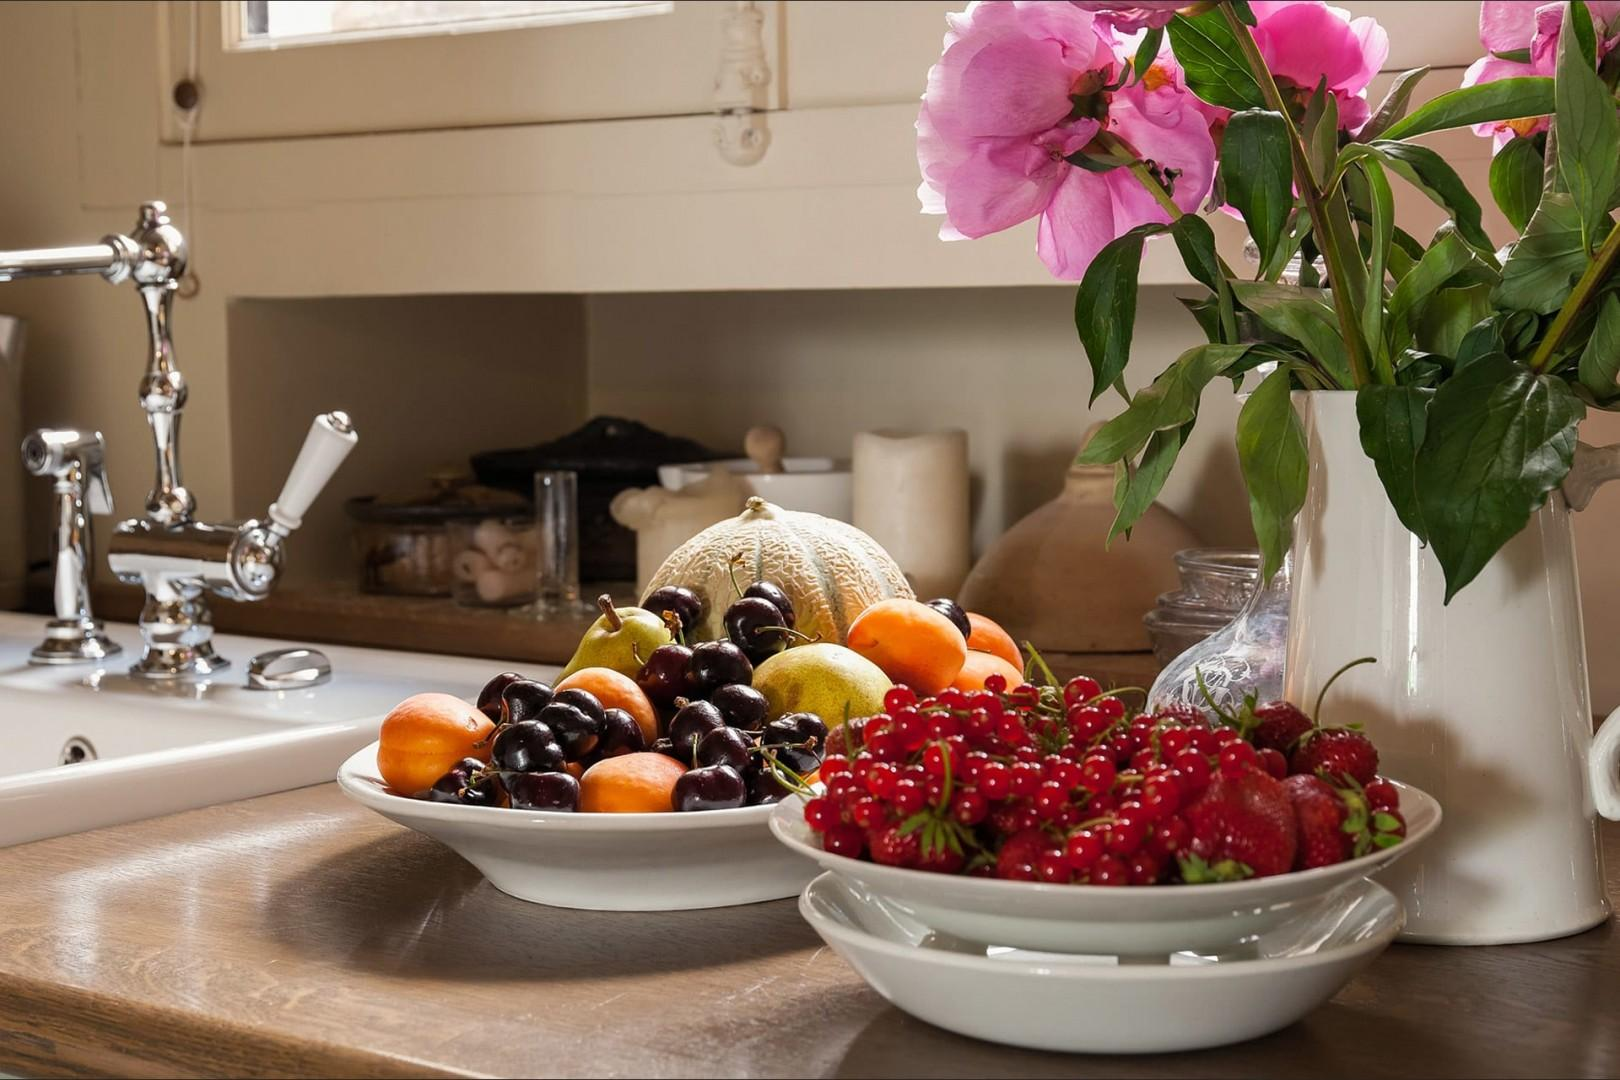 Bring home amazing fresh fruit, vegetables and flowers from local markets.